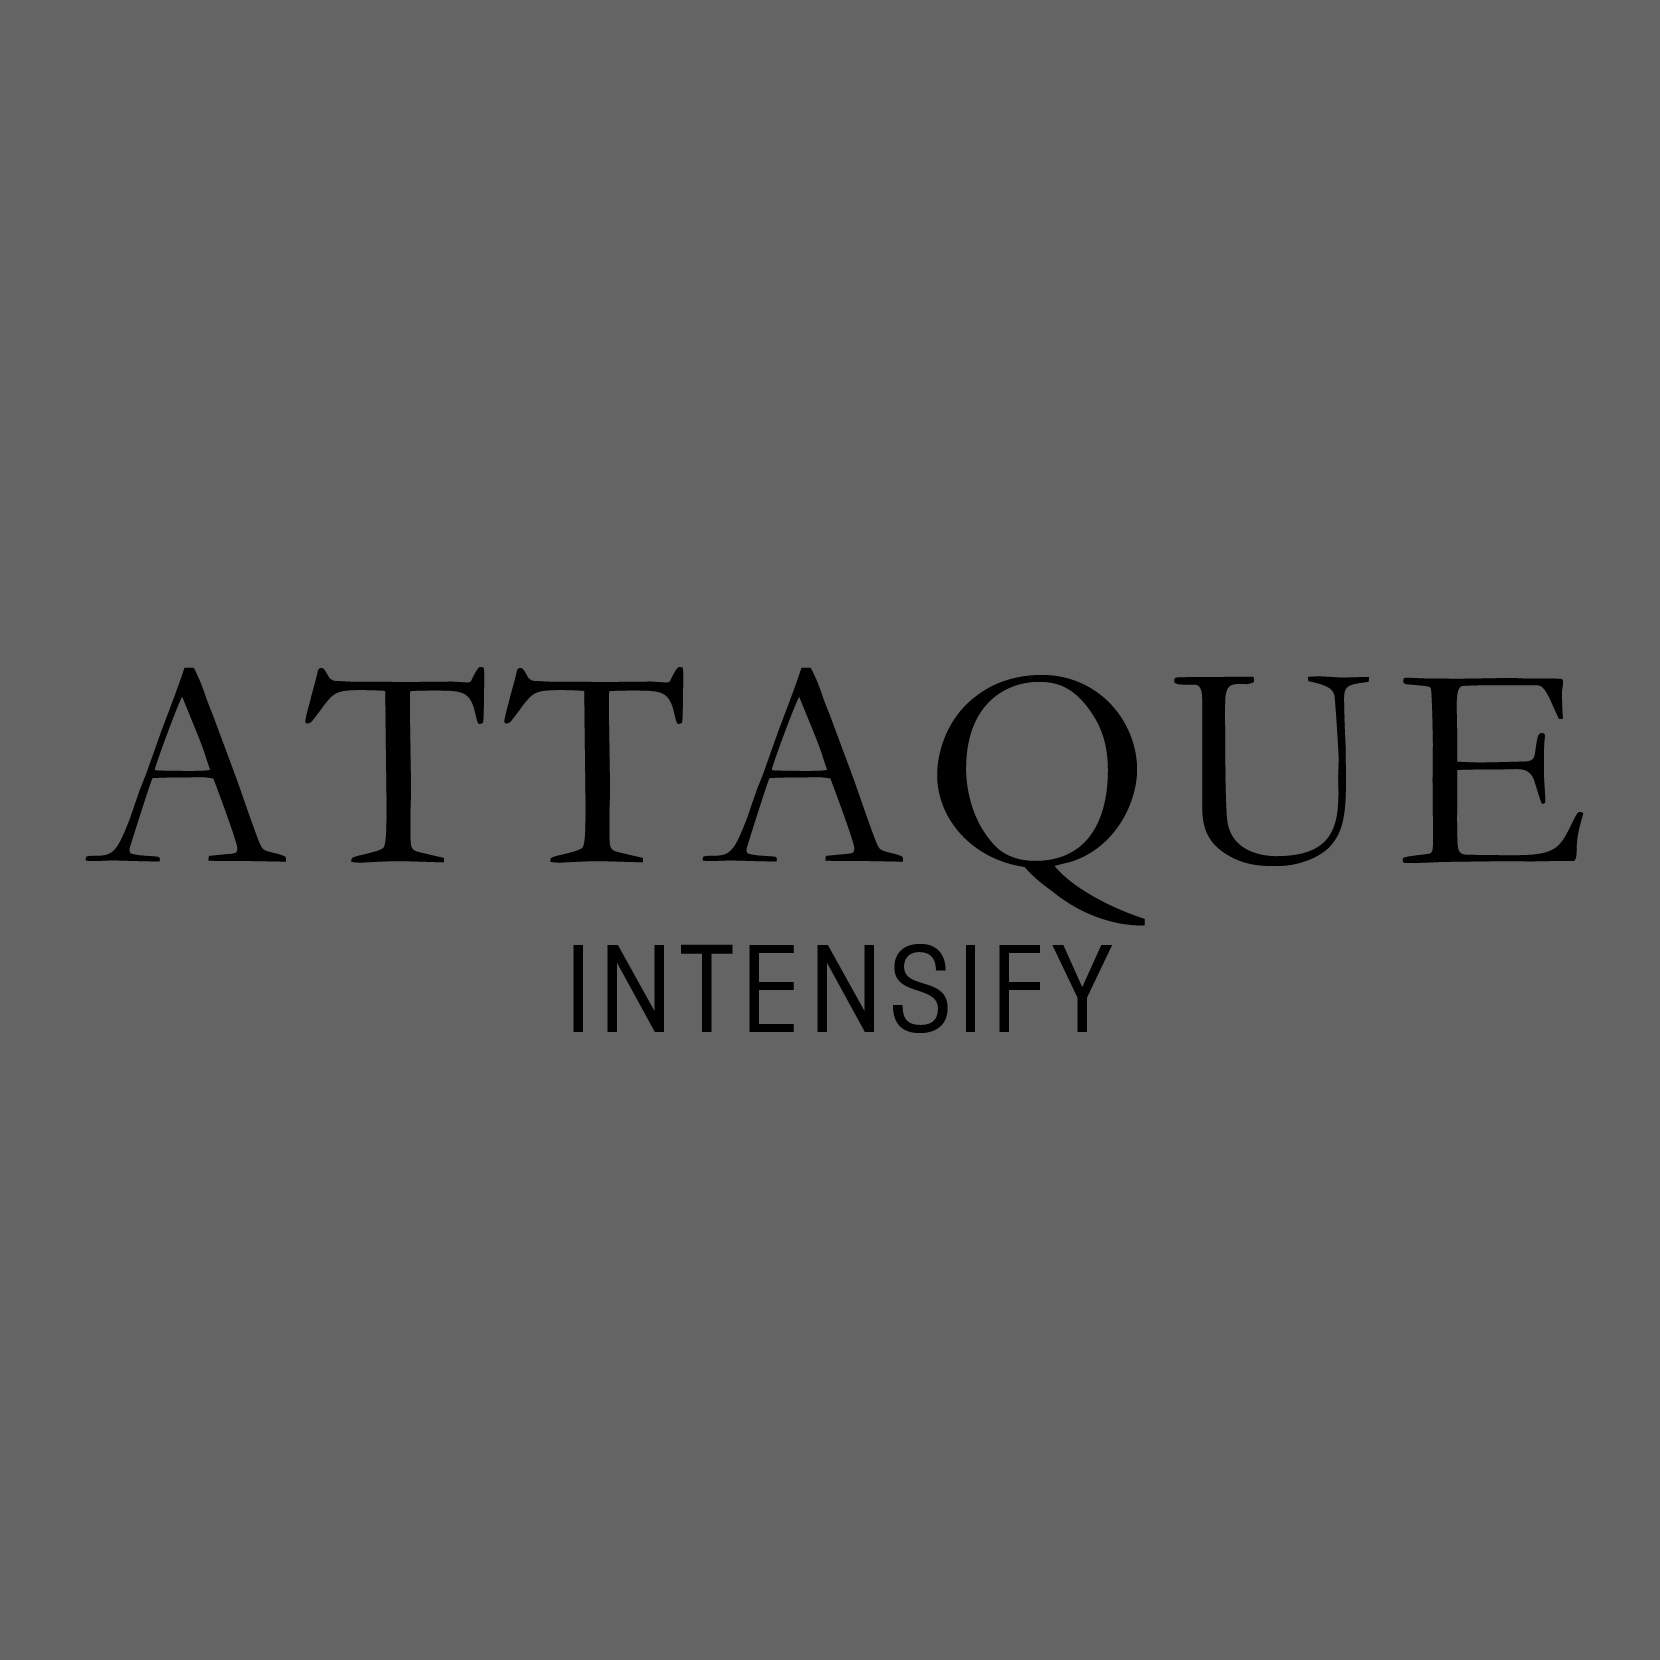 Attaque - Intensify Free Download